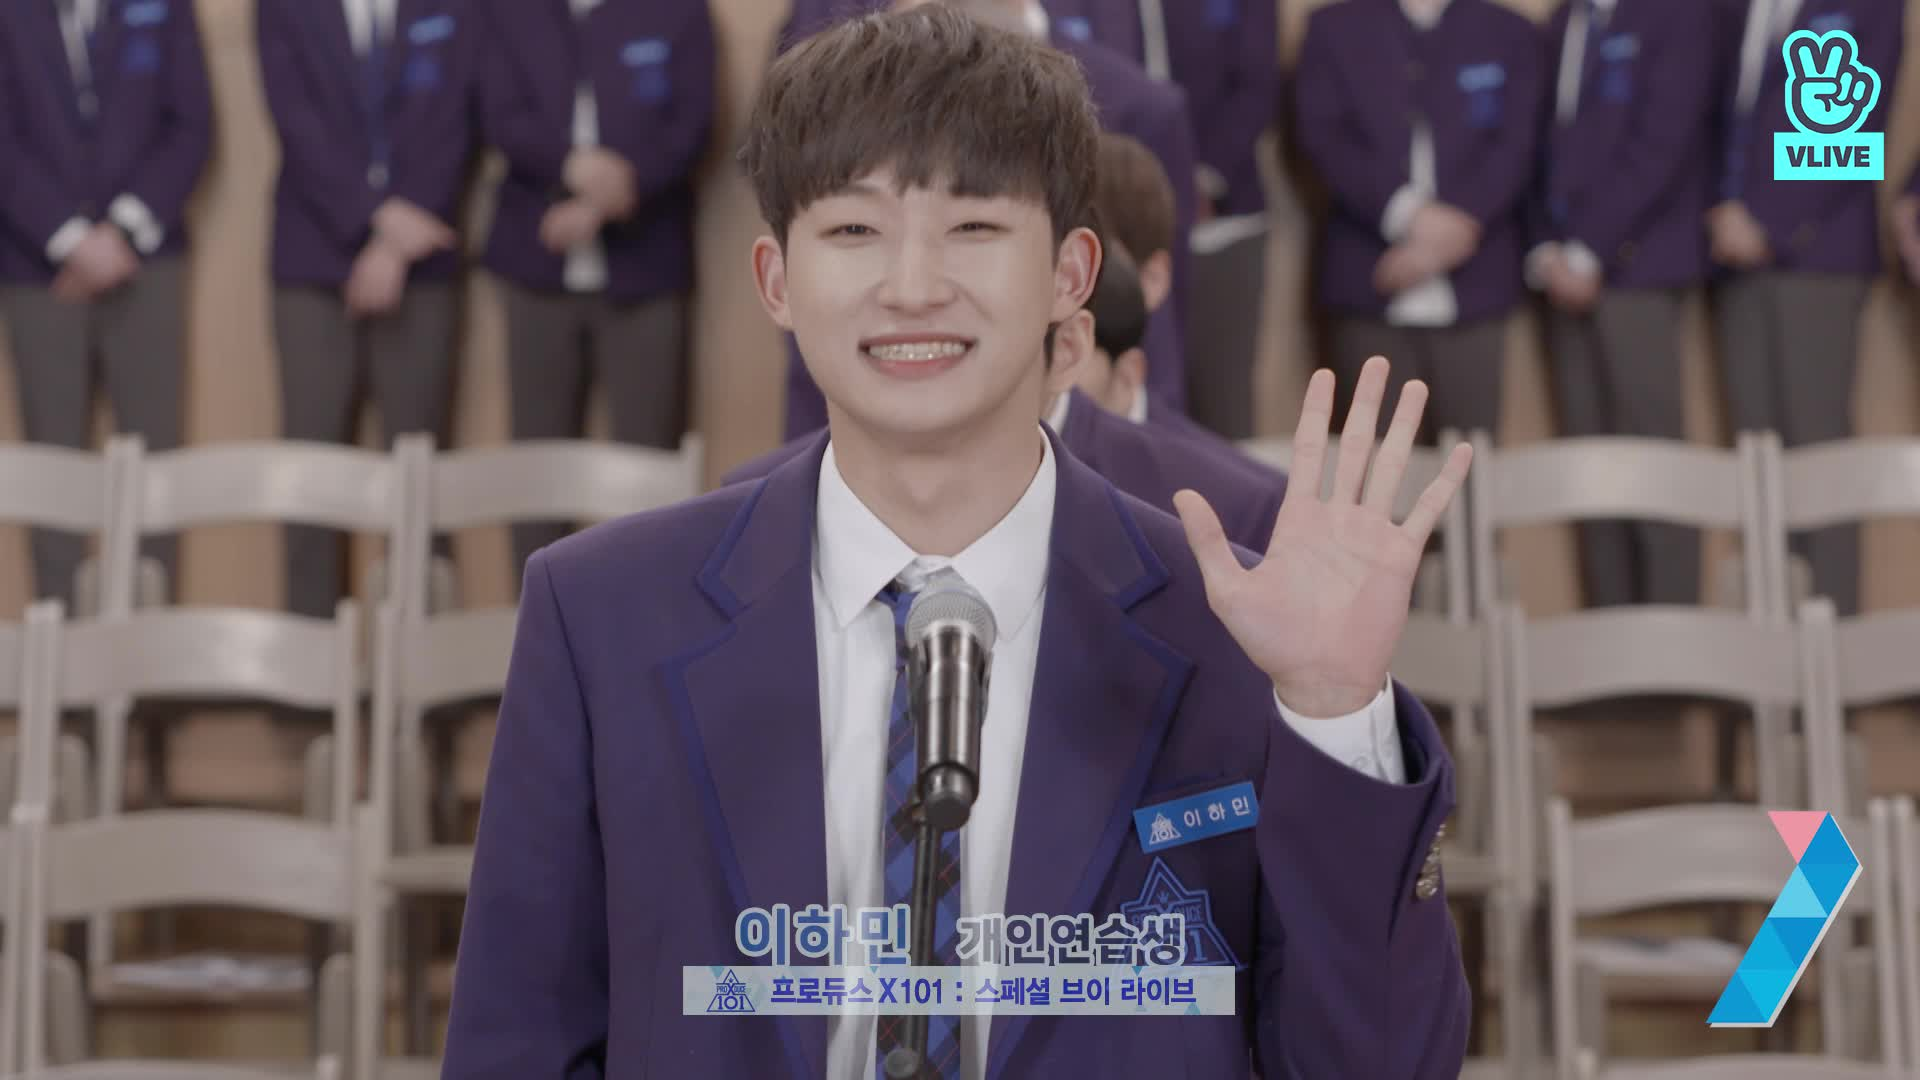 [PRODUCE X 101] 10sec. PR / LEE HA MIN